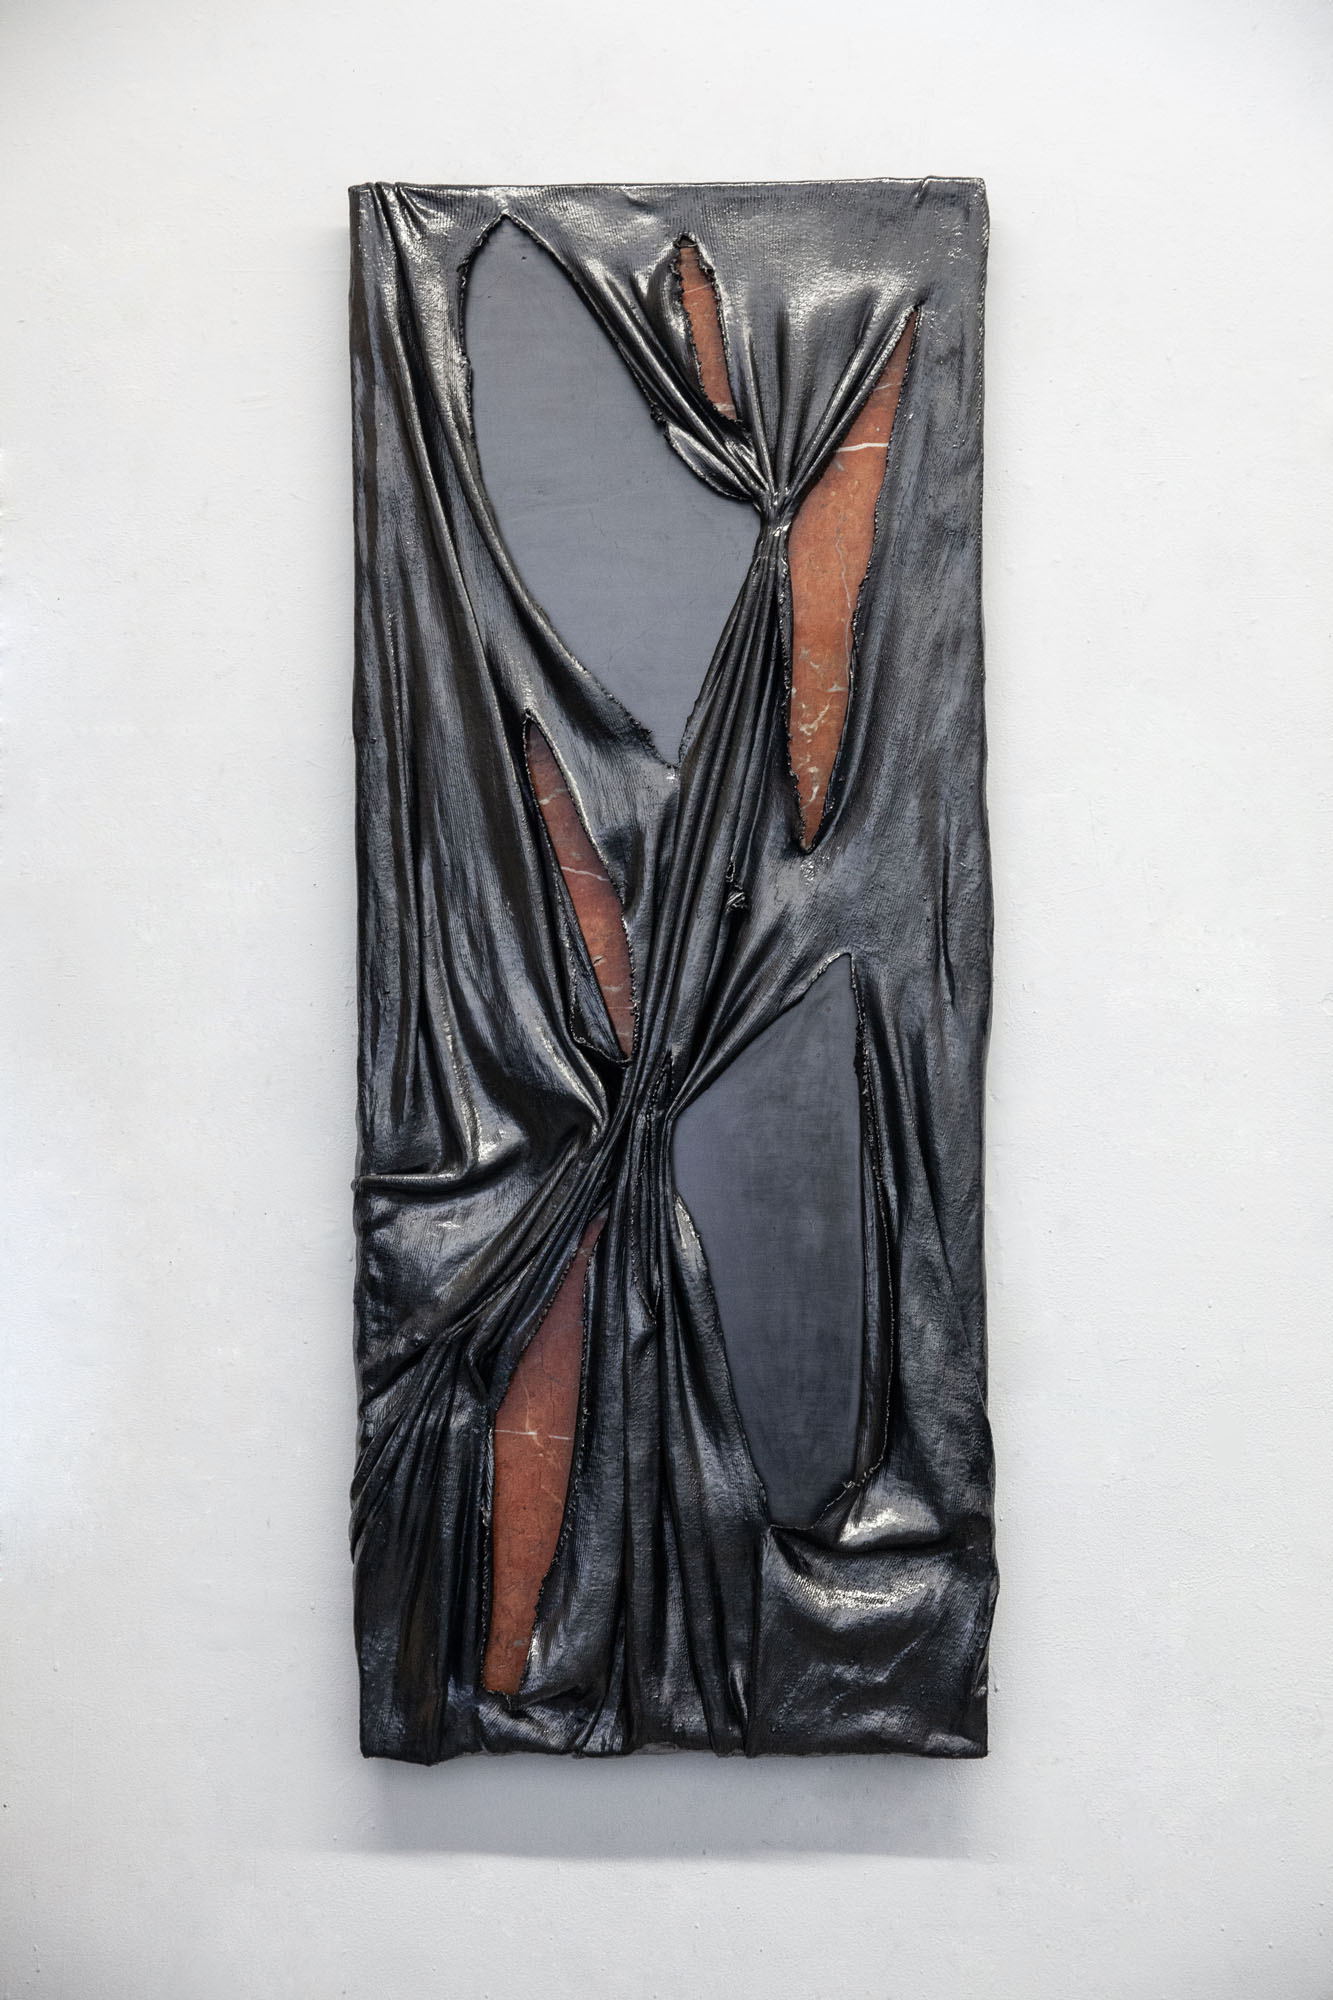 Lauren Seiden  Torn Curtain , 2019 Marble, graphite pencil, fabric, and mixed mediums 48 x 20 inches (121.92 x 50.8 cm)